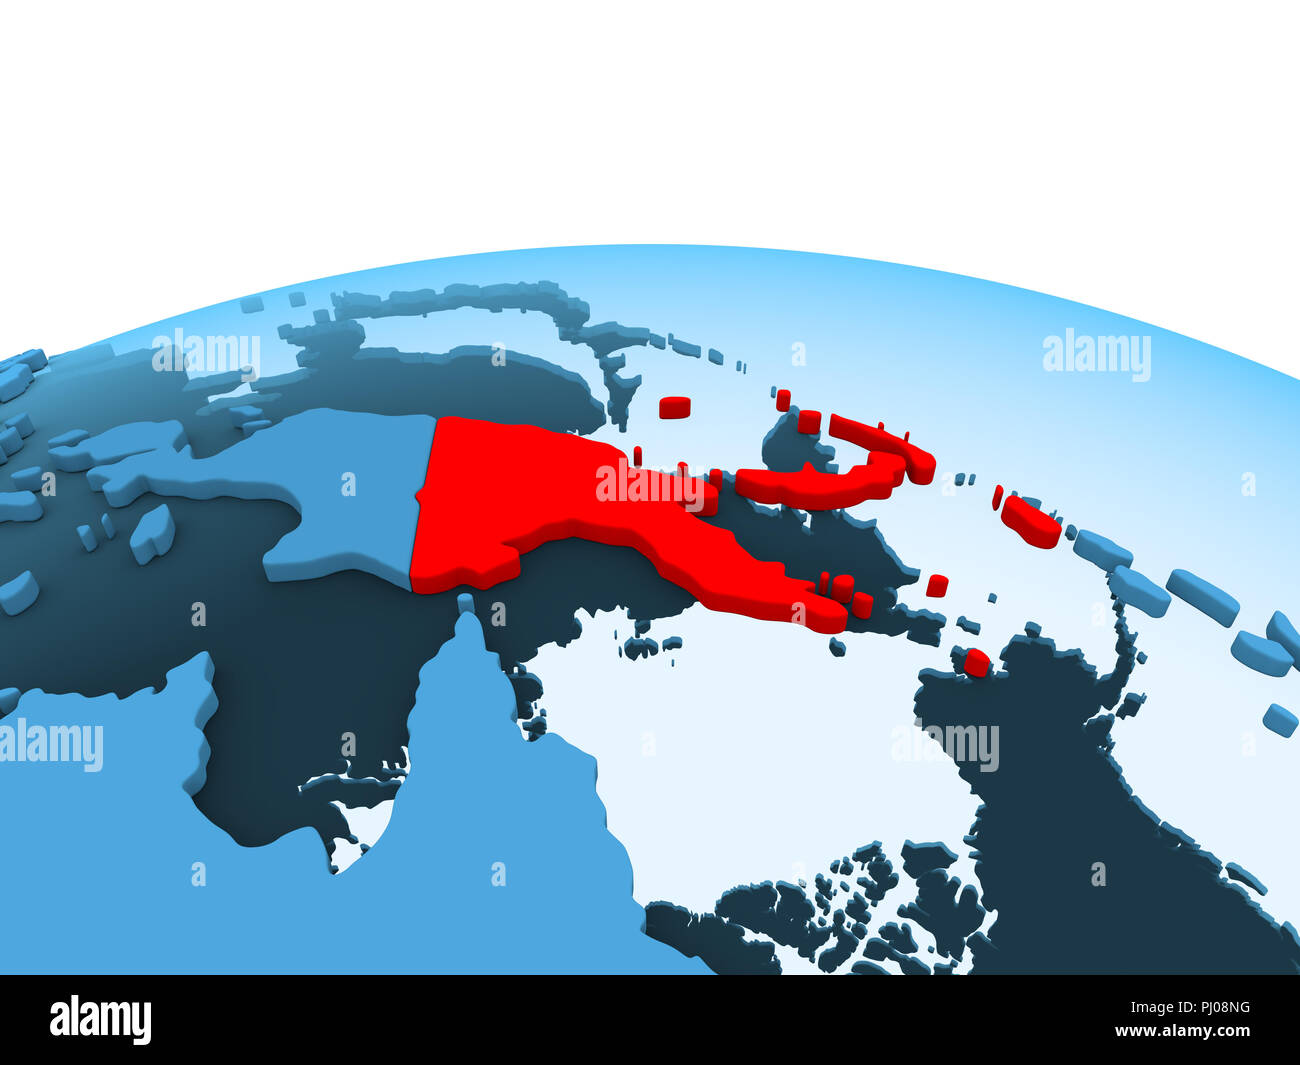 Image of: Map Of Papua New Guinea In Red On Blue Political Globe With Transparent Oceans 3d Illustration Stock Photo Alamy